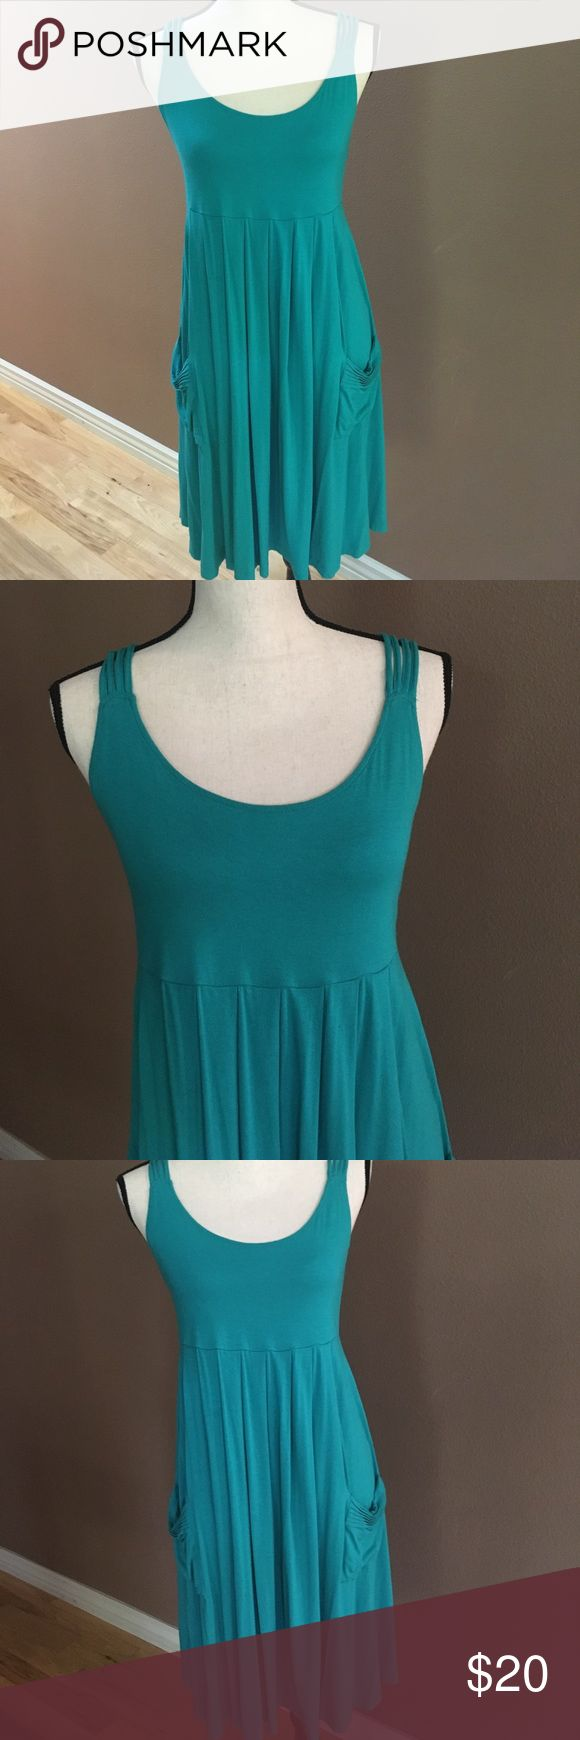 CALVIN KLEIN Strappy Sundress Calvin Klein's ready for summer, strappy dress has an empire waist and pockets on front. Fabric is 95 rayon/5 spandex for great draping. Very good pre-owned condition. Calvin Klein Dresses Midi